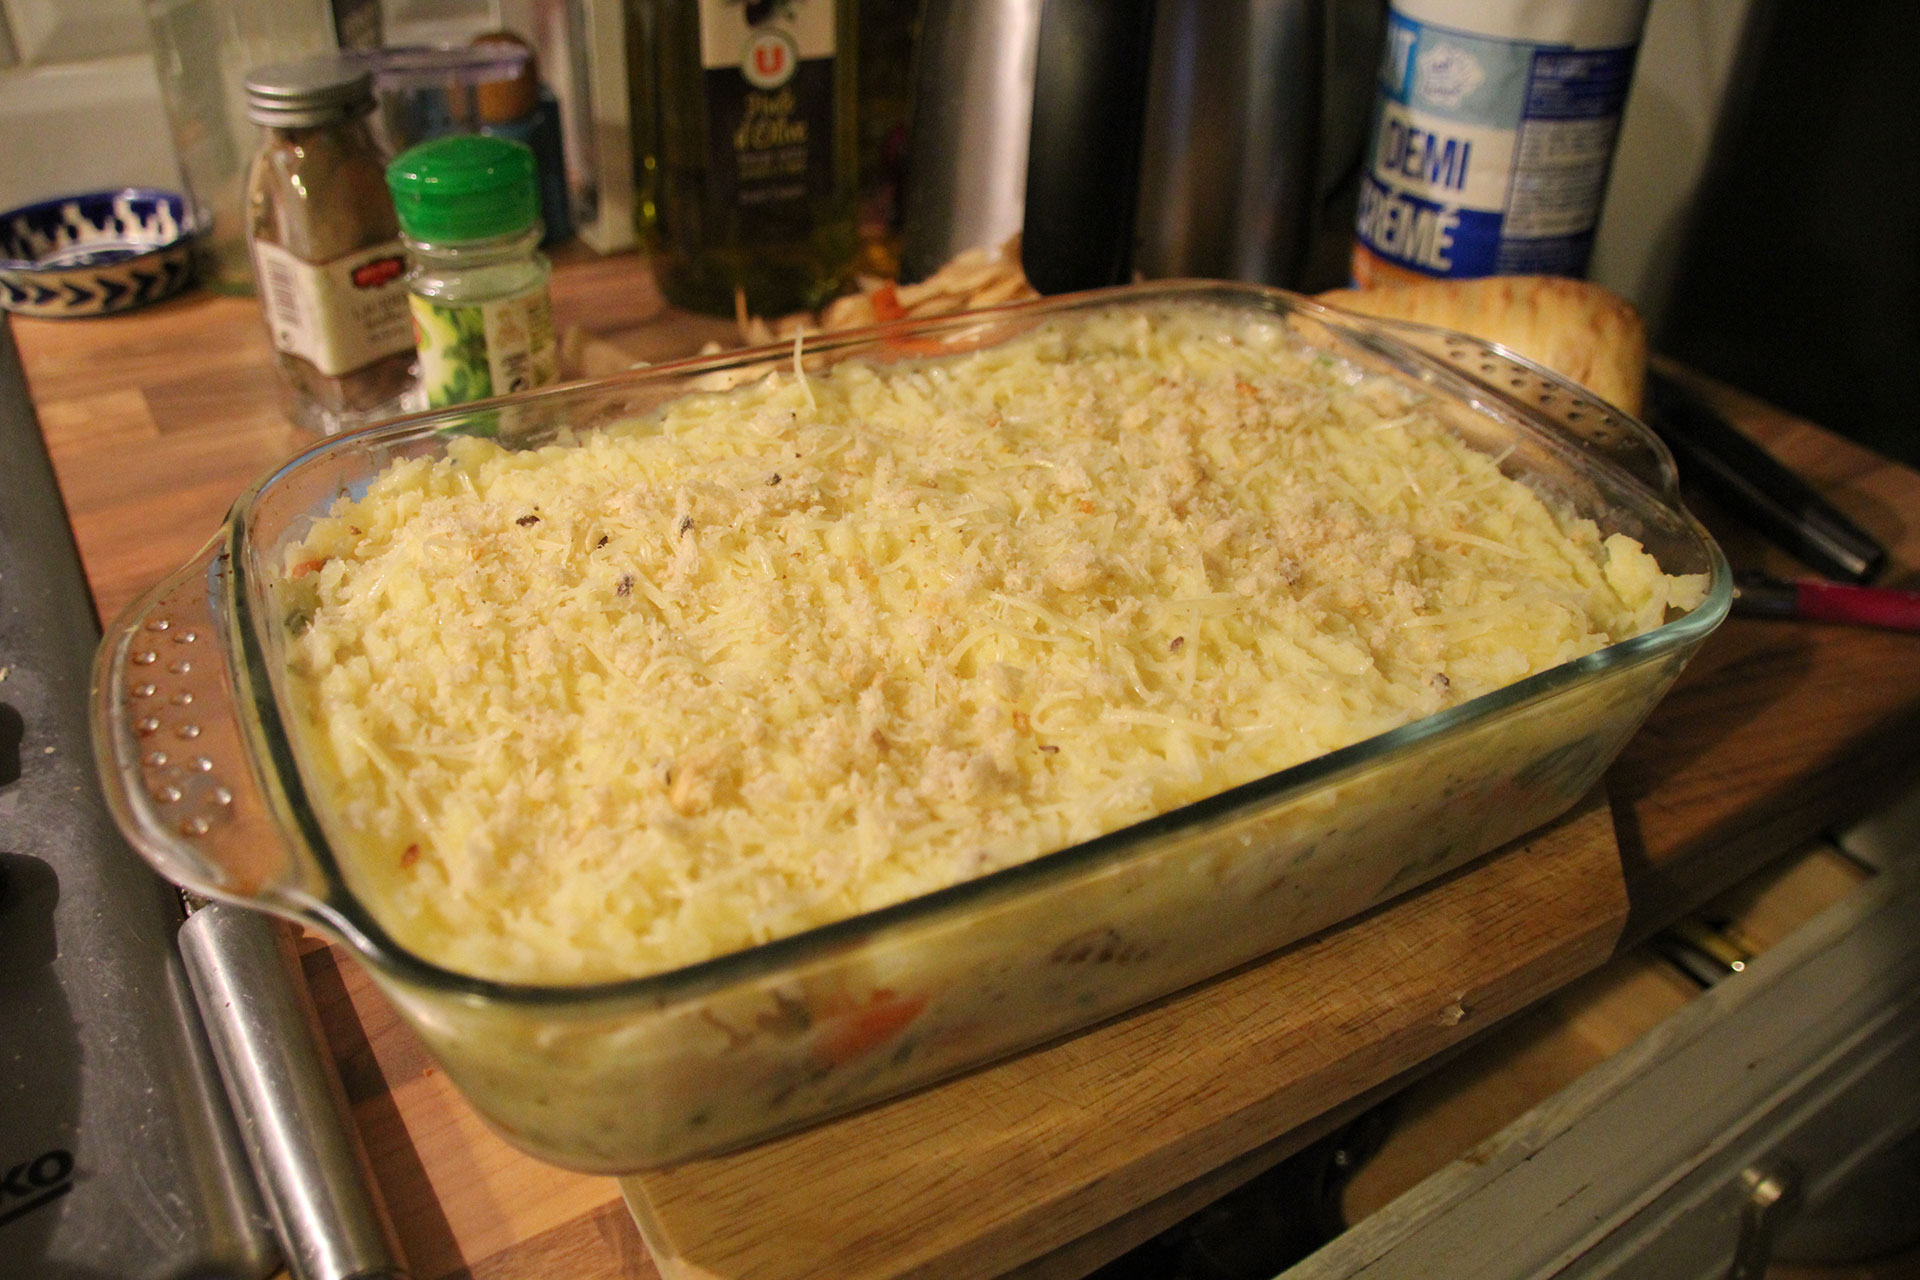 Fish pie with breadcrumbs and cheese